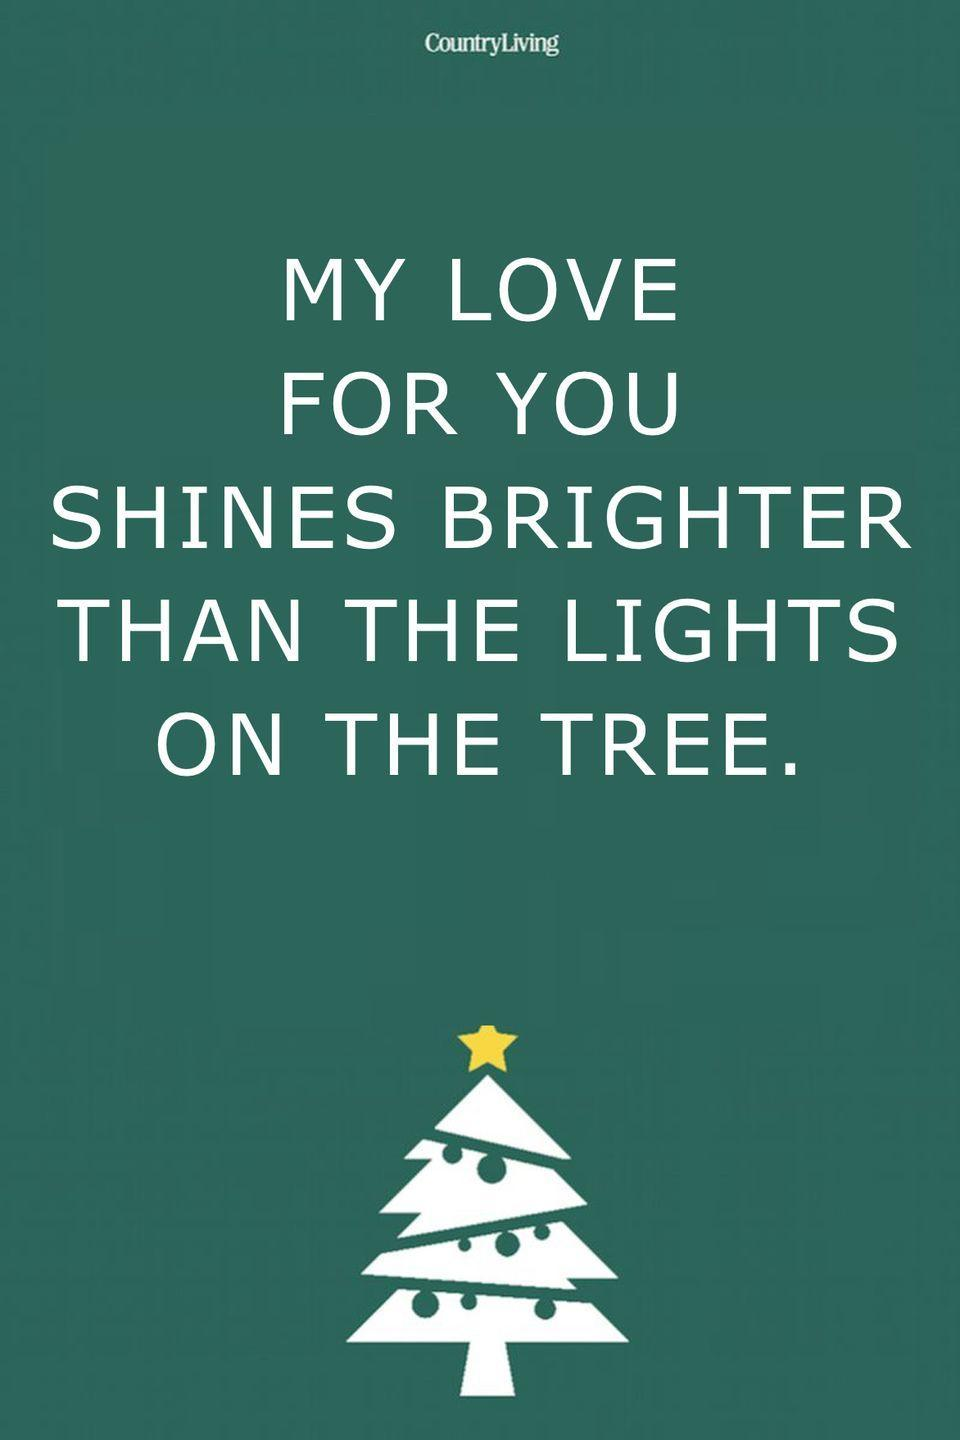 <p>My love for you shines brighter than the lights on the tree. </p>